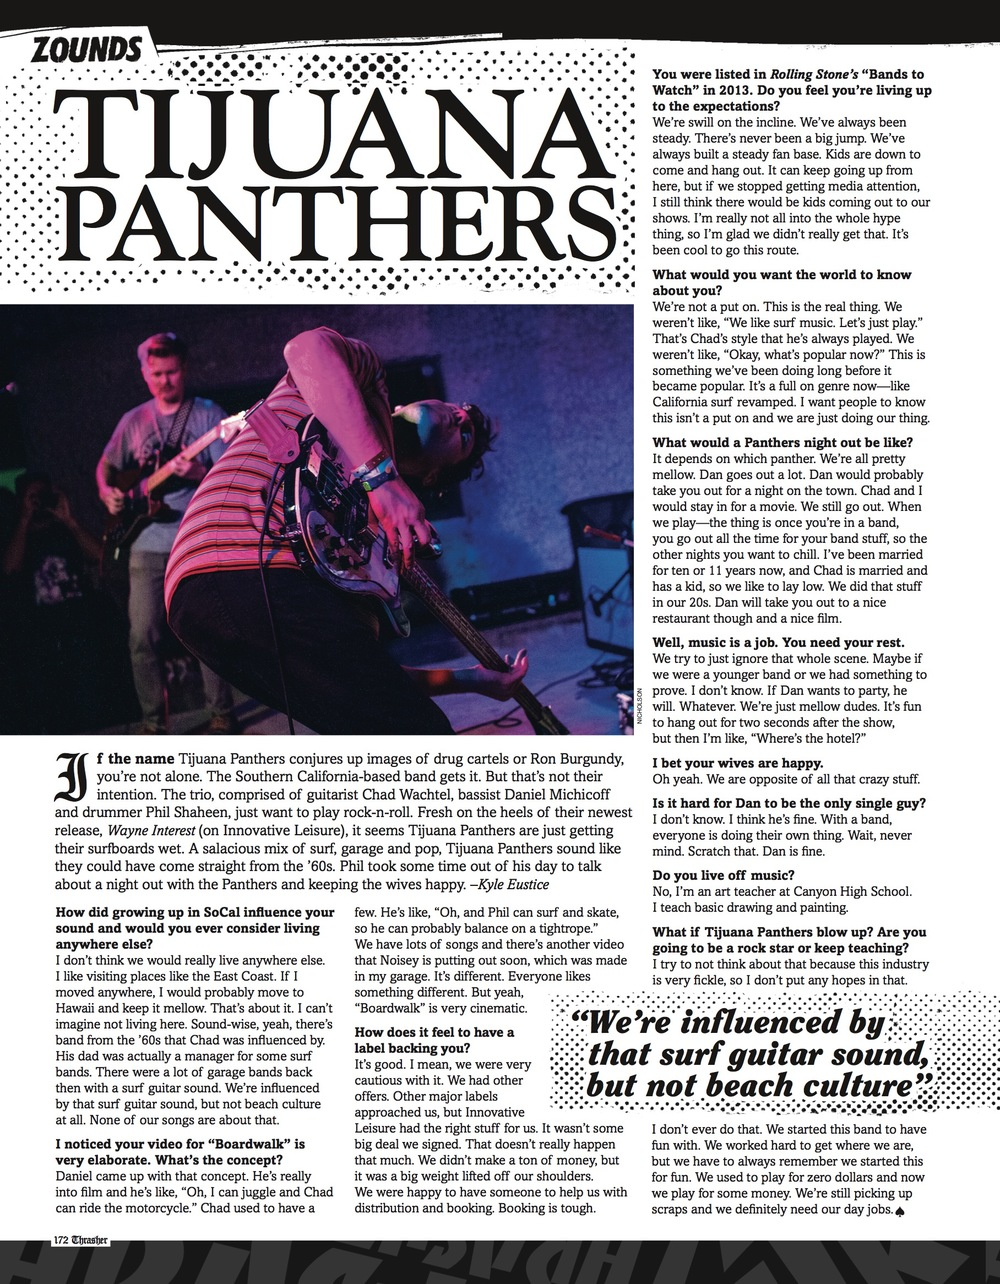 Tijuana Panthers at SXSW for Thrasher Magazine, Sept. 2014